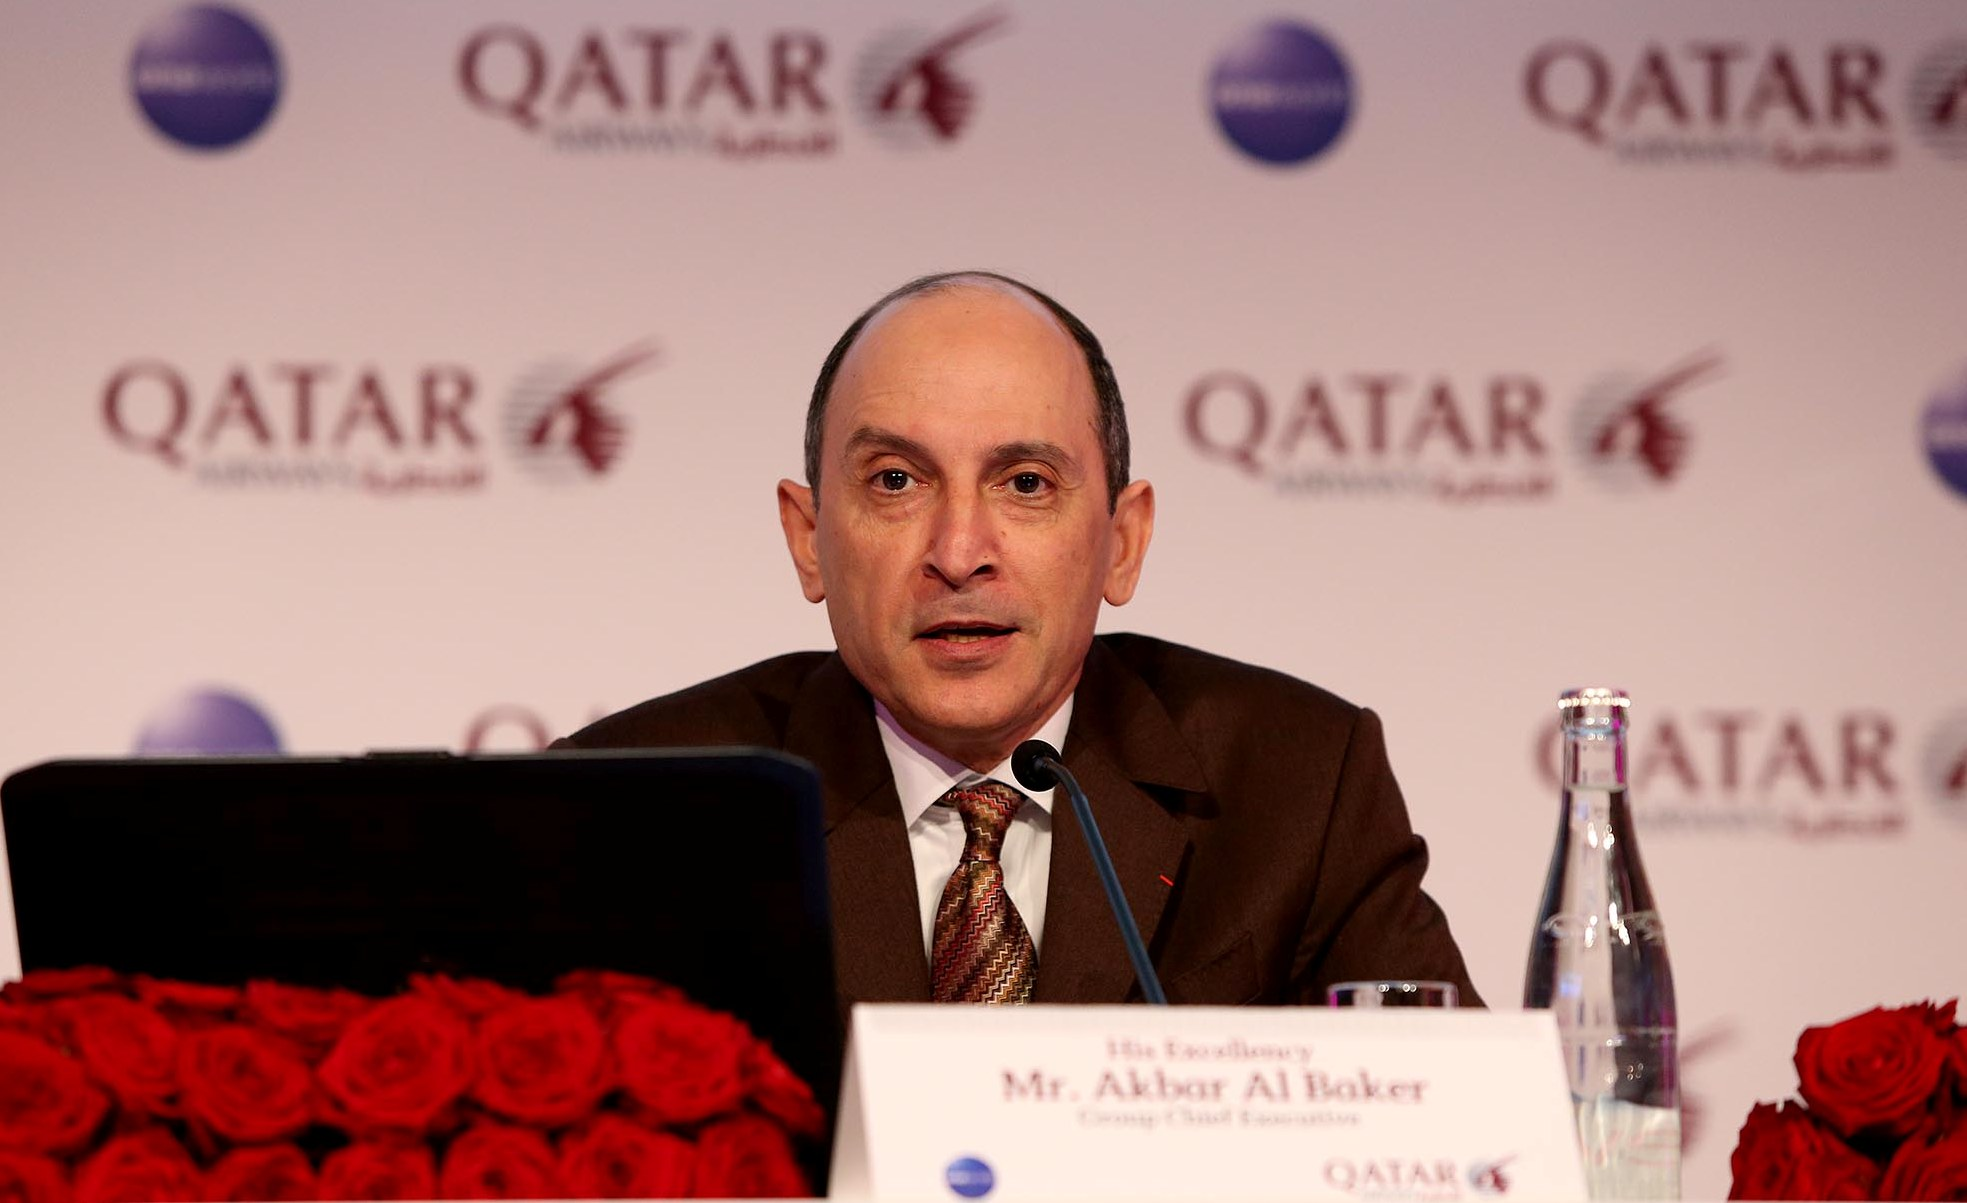 Qatar's Al Baker to chair IATA board of governors from 2018